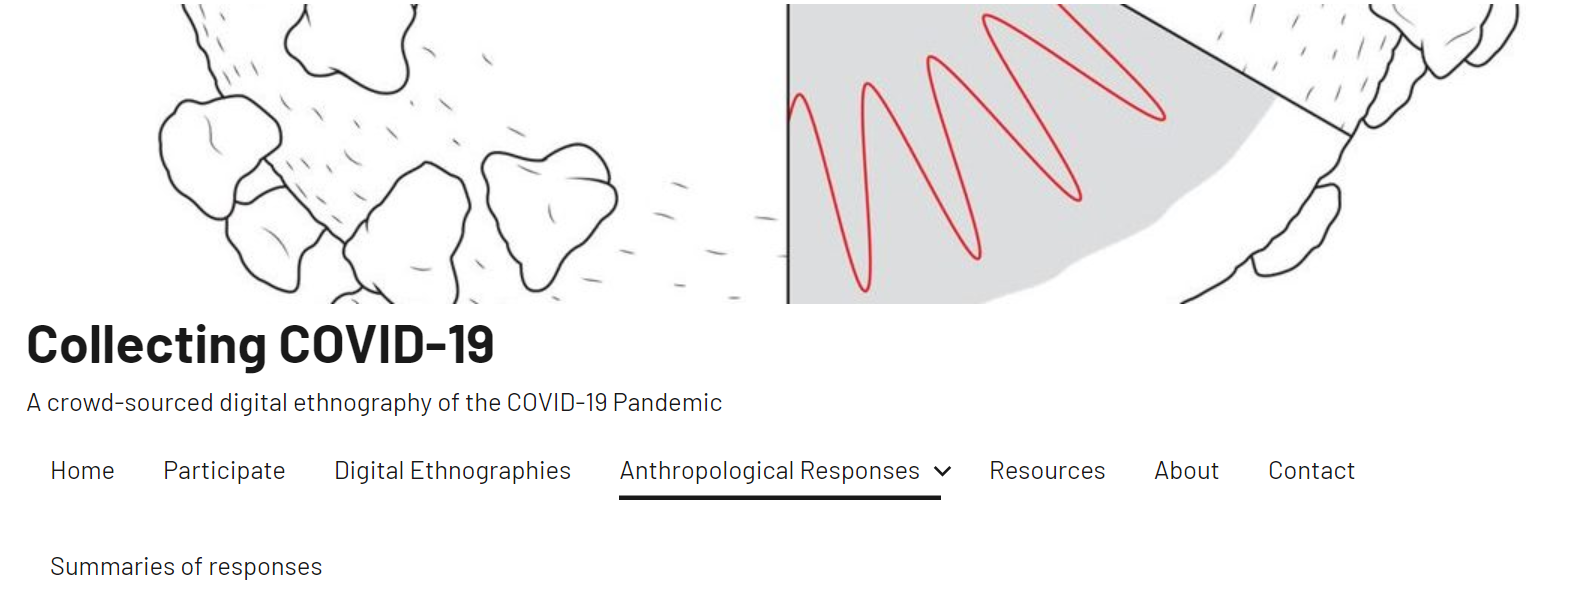 A crowd-sourced digital ethnography of the COVID-19 Pandemic